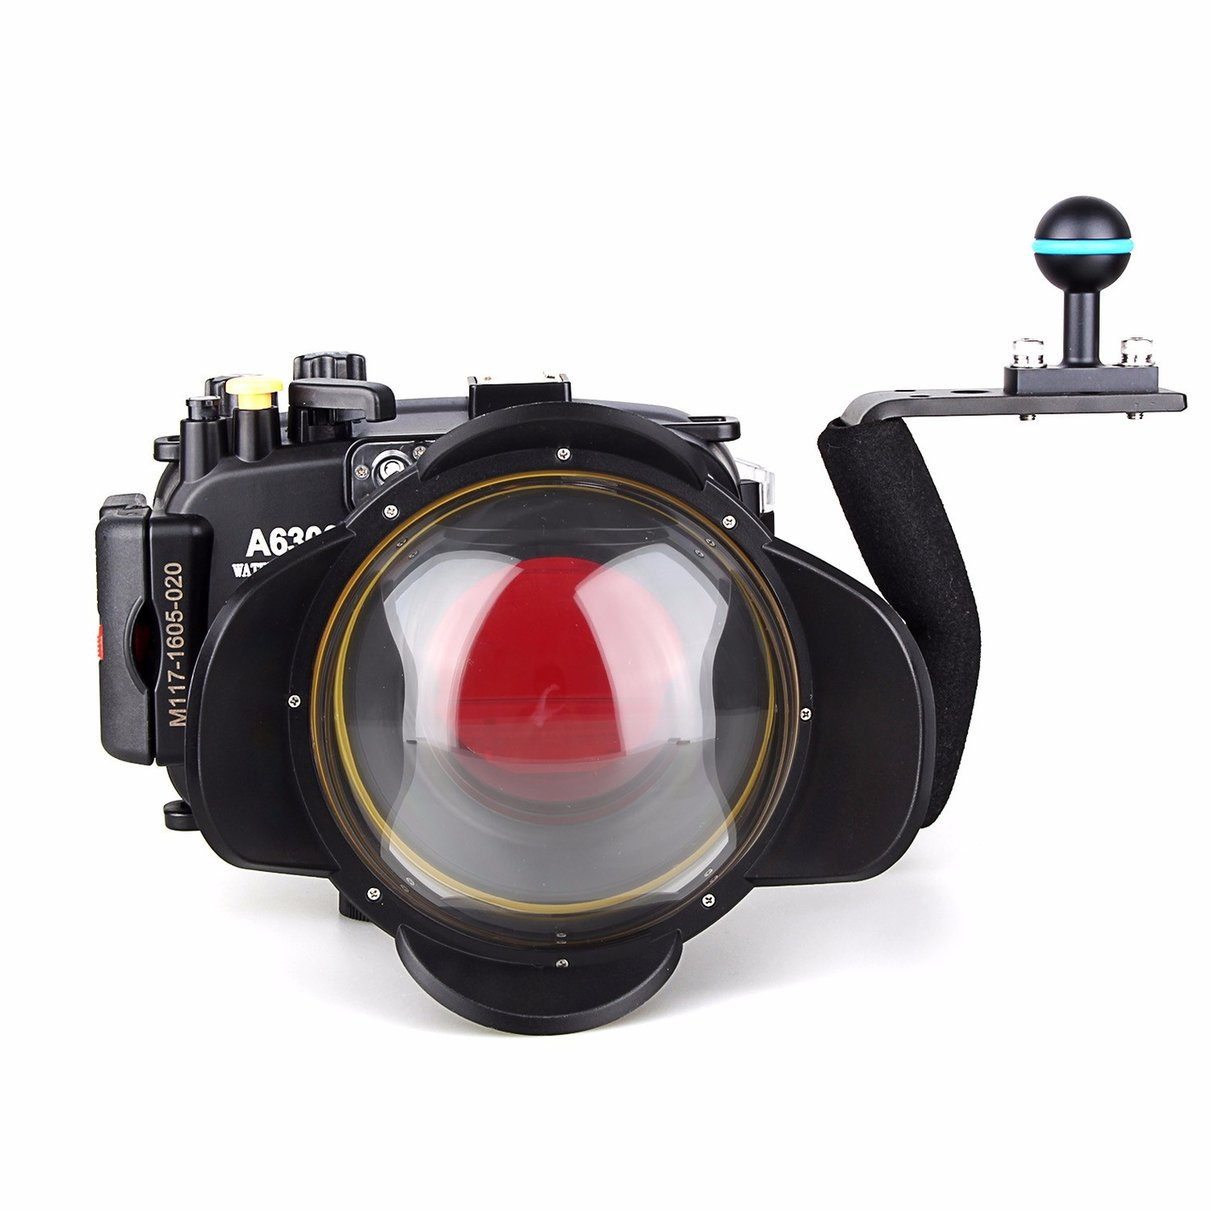 Meikon 40m/130ft Waterproof Underwater Camera Housing Case for A6300 + Aluminium handle + 67mm Fisheye Lens + 67mm Red Filter 40m 130ft waterproof underwater camera diving housing case aluminum handle for sony a7 a7r a7s 28 70mm lens camera